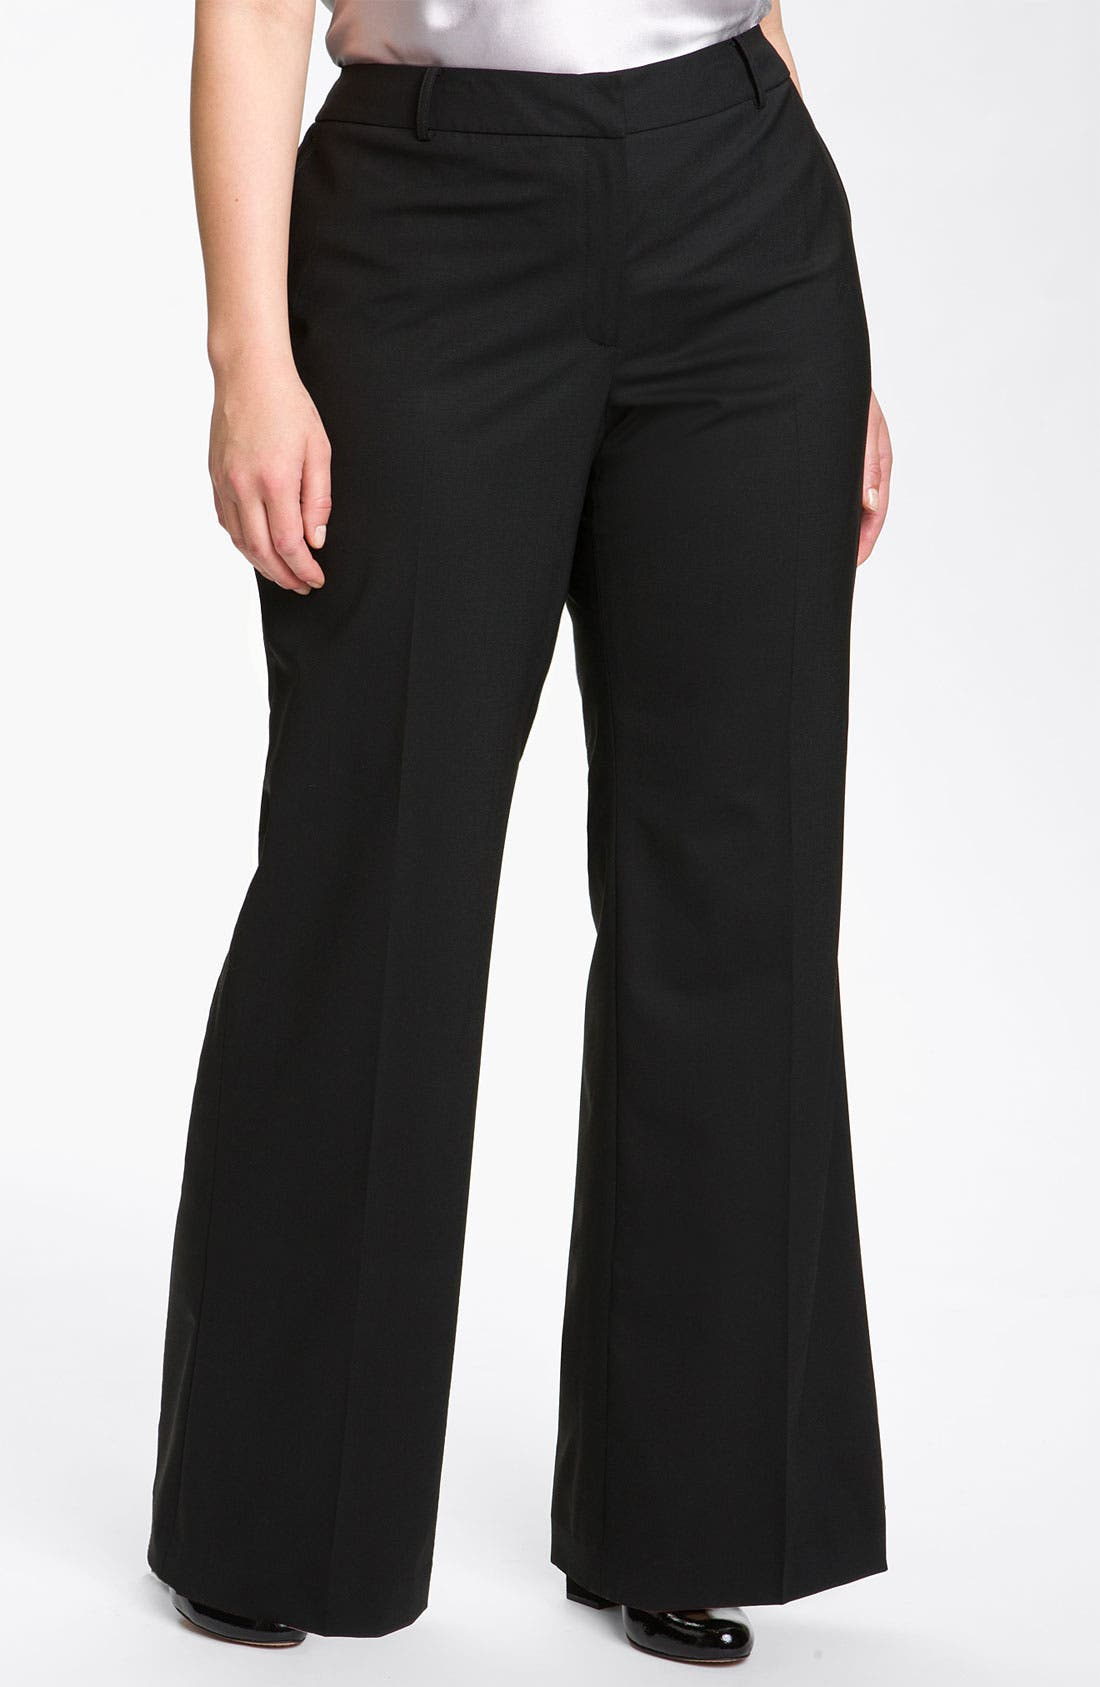 Alternate Image 1 Selected - Lafayette 148 New York 'Delancy' Stretch Wool Trousers (Plus)